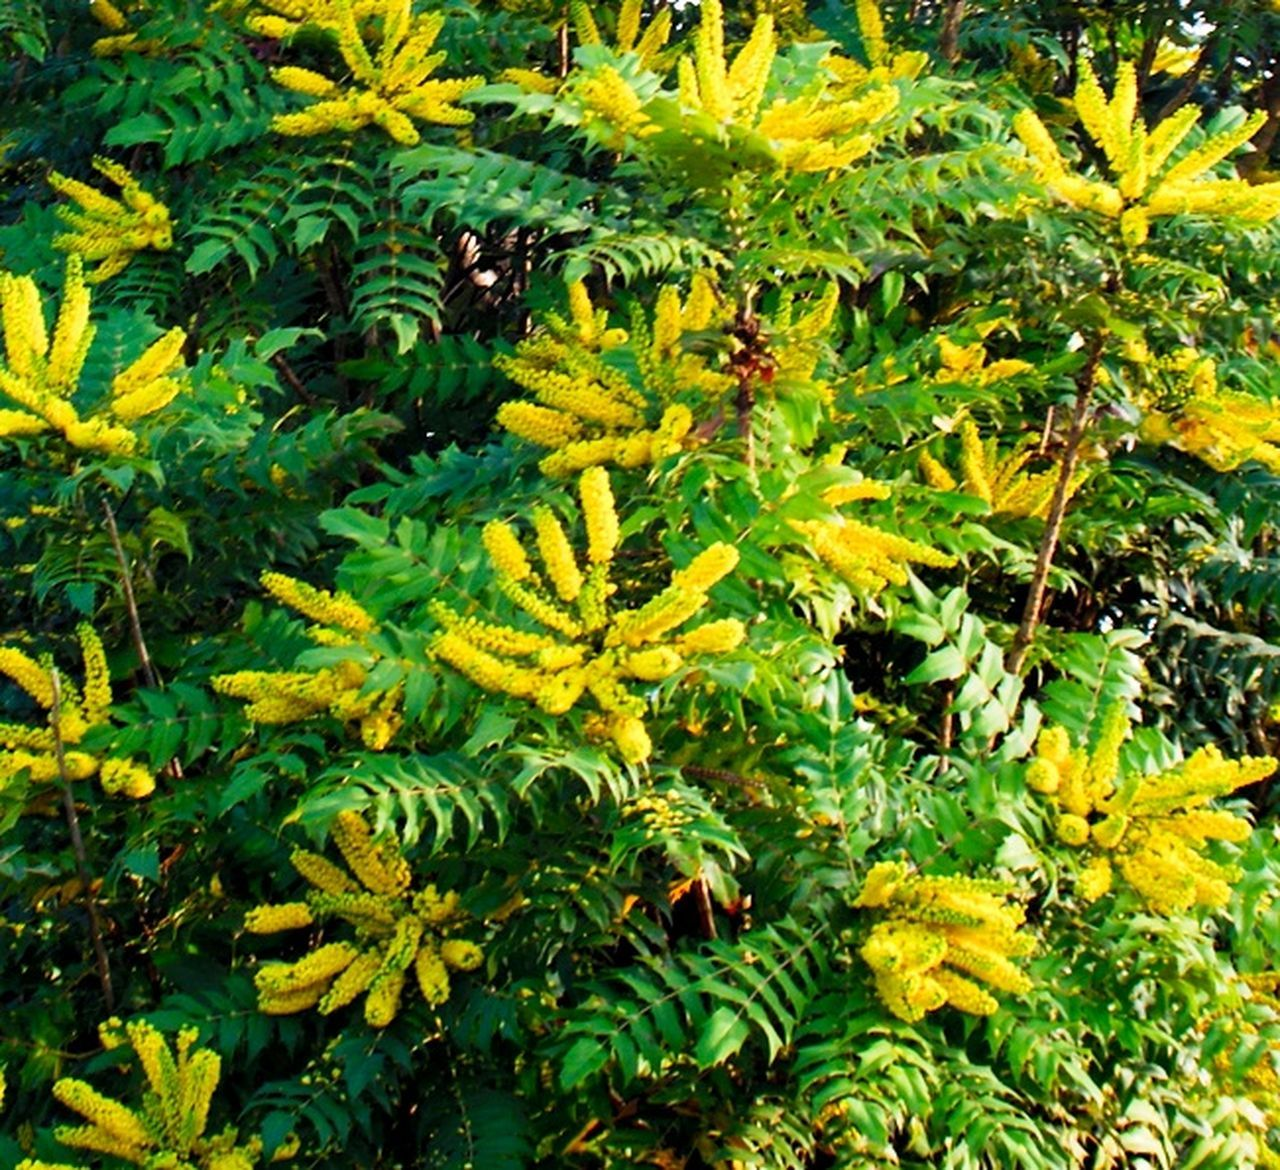 green color, growth, nature, leaf, yellow, day, beauty in nature, plant, no people, outdoors, tree, flower, freshness, close-up